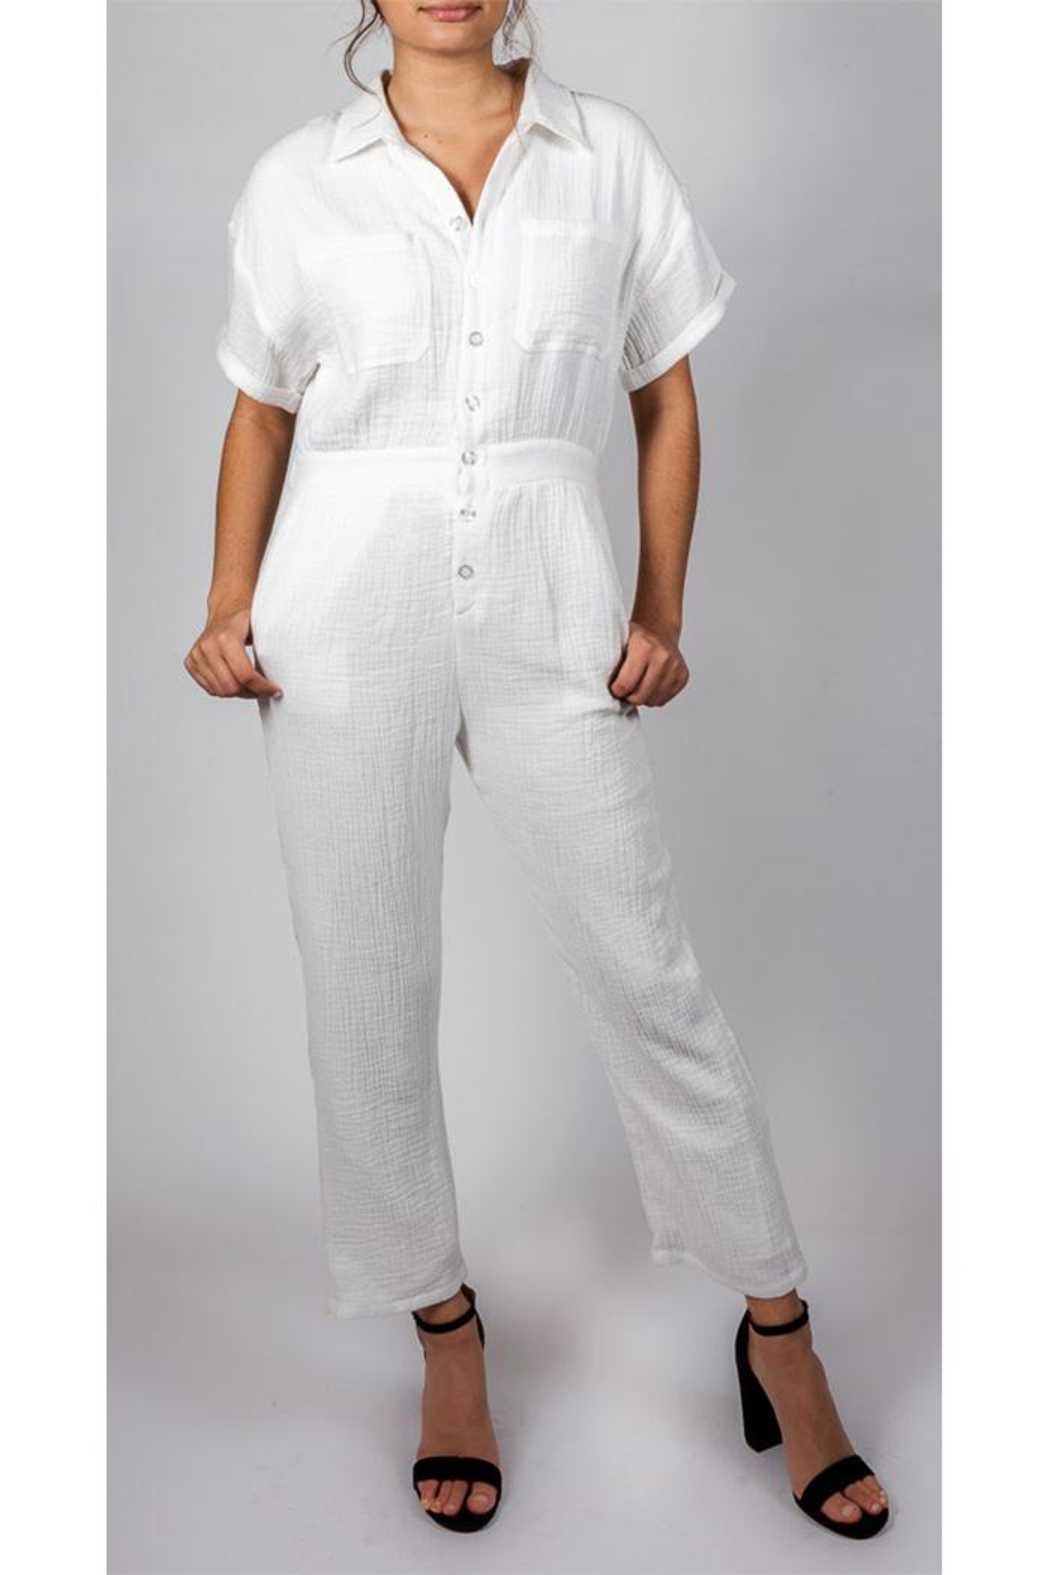 Le Lis Working-Girl Cotton Jumpsuit - Front Full Image